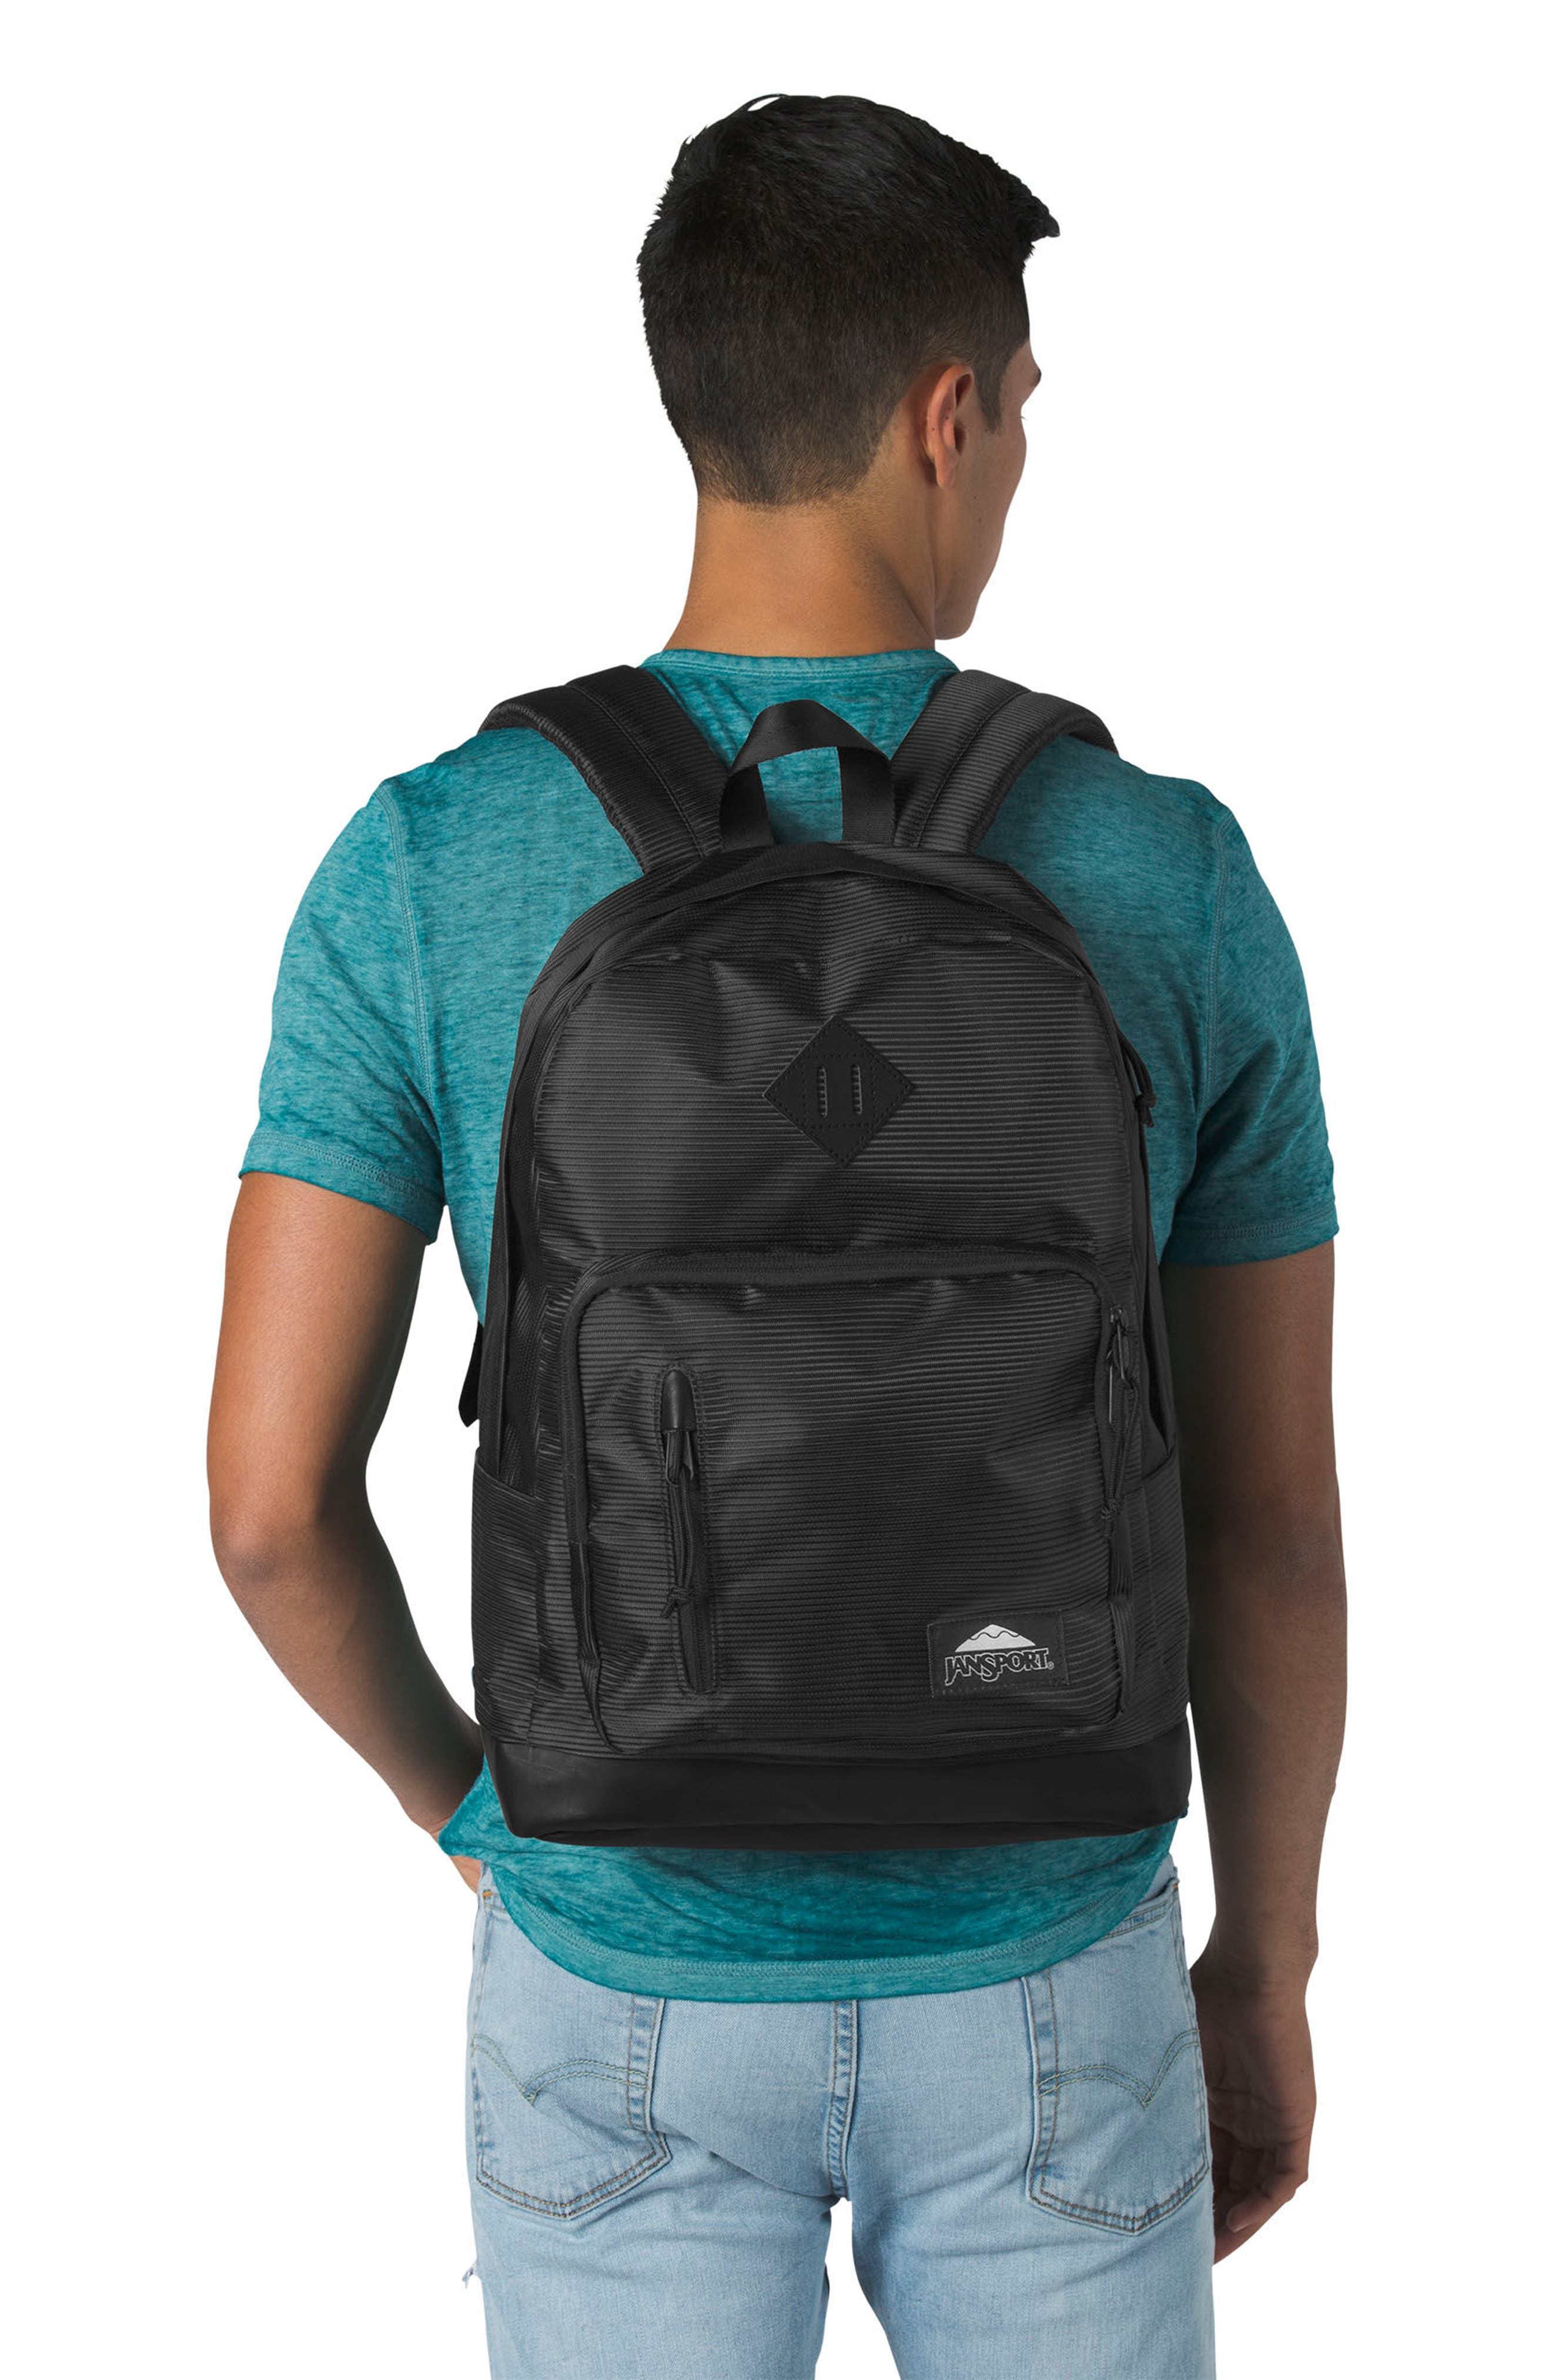 JANSPORT,                             Axiom Backpack,                             Alternate thumbnail 5, color,                             001